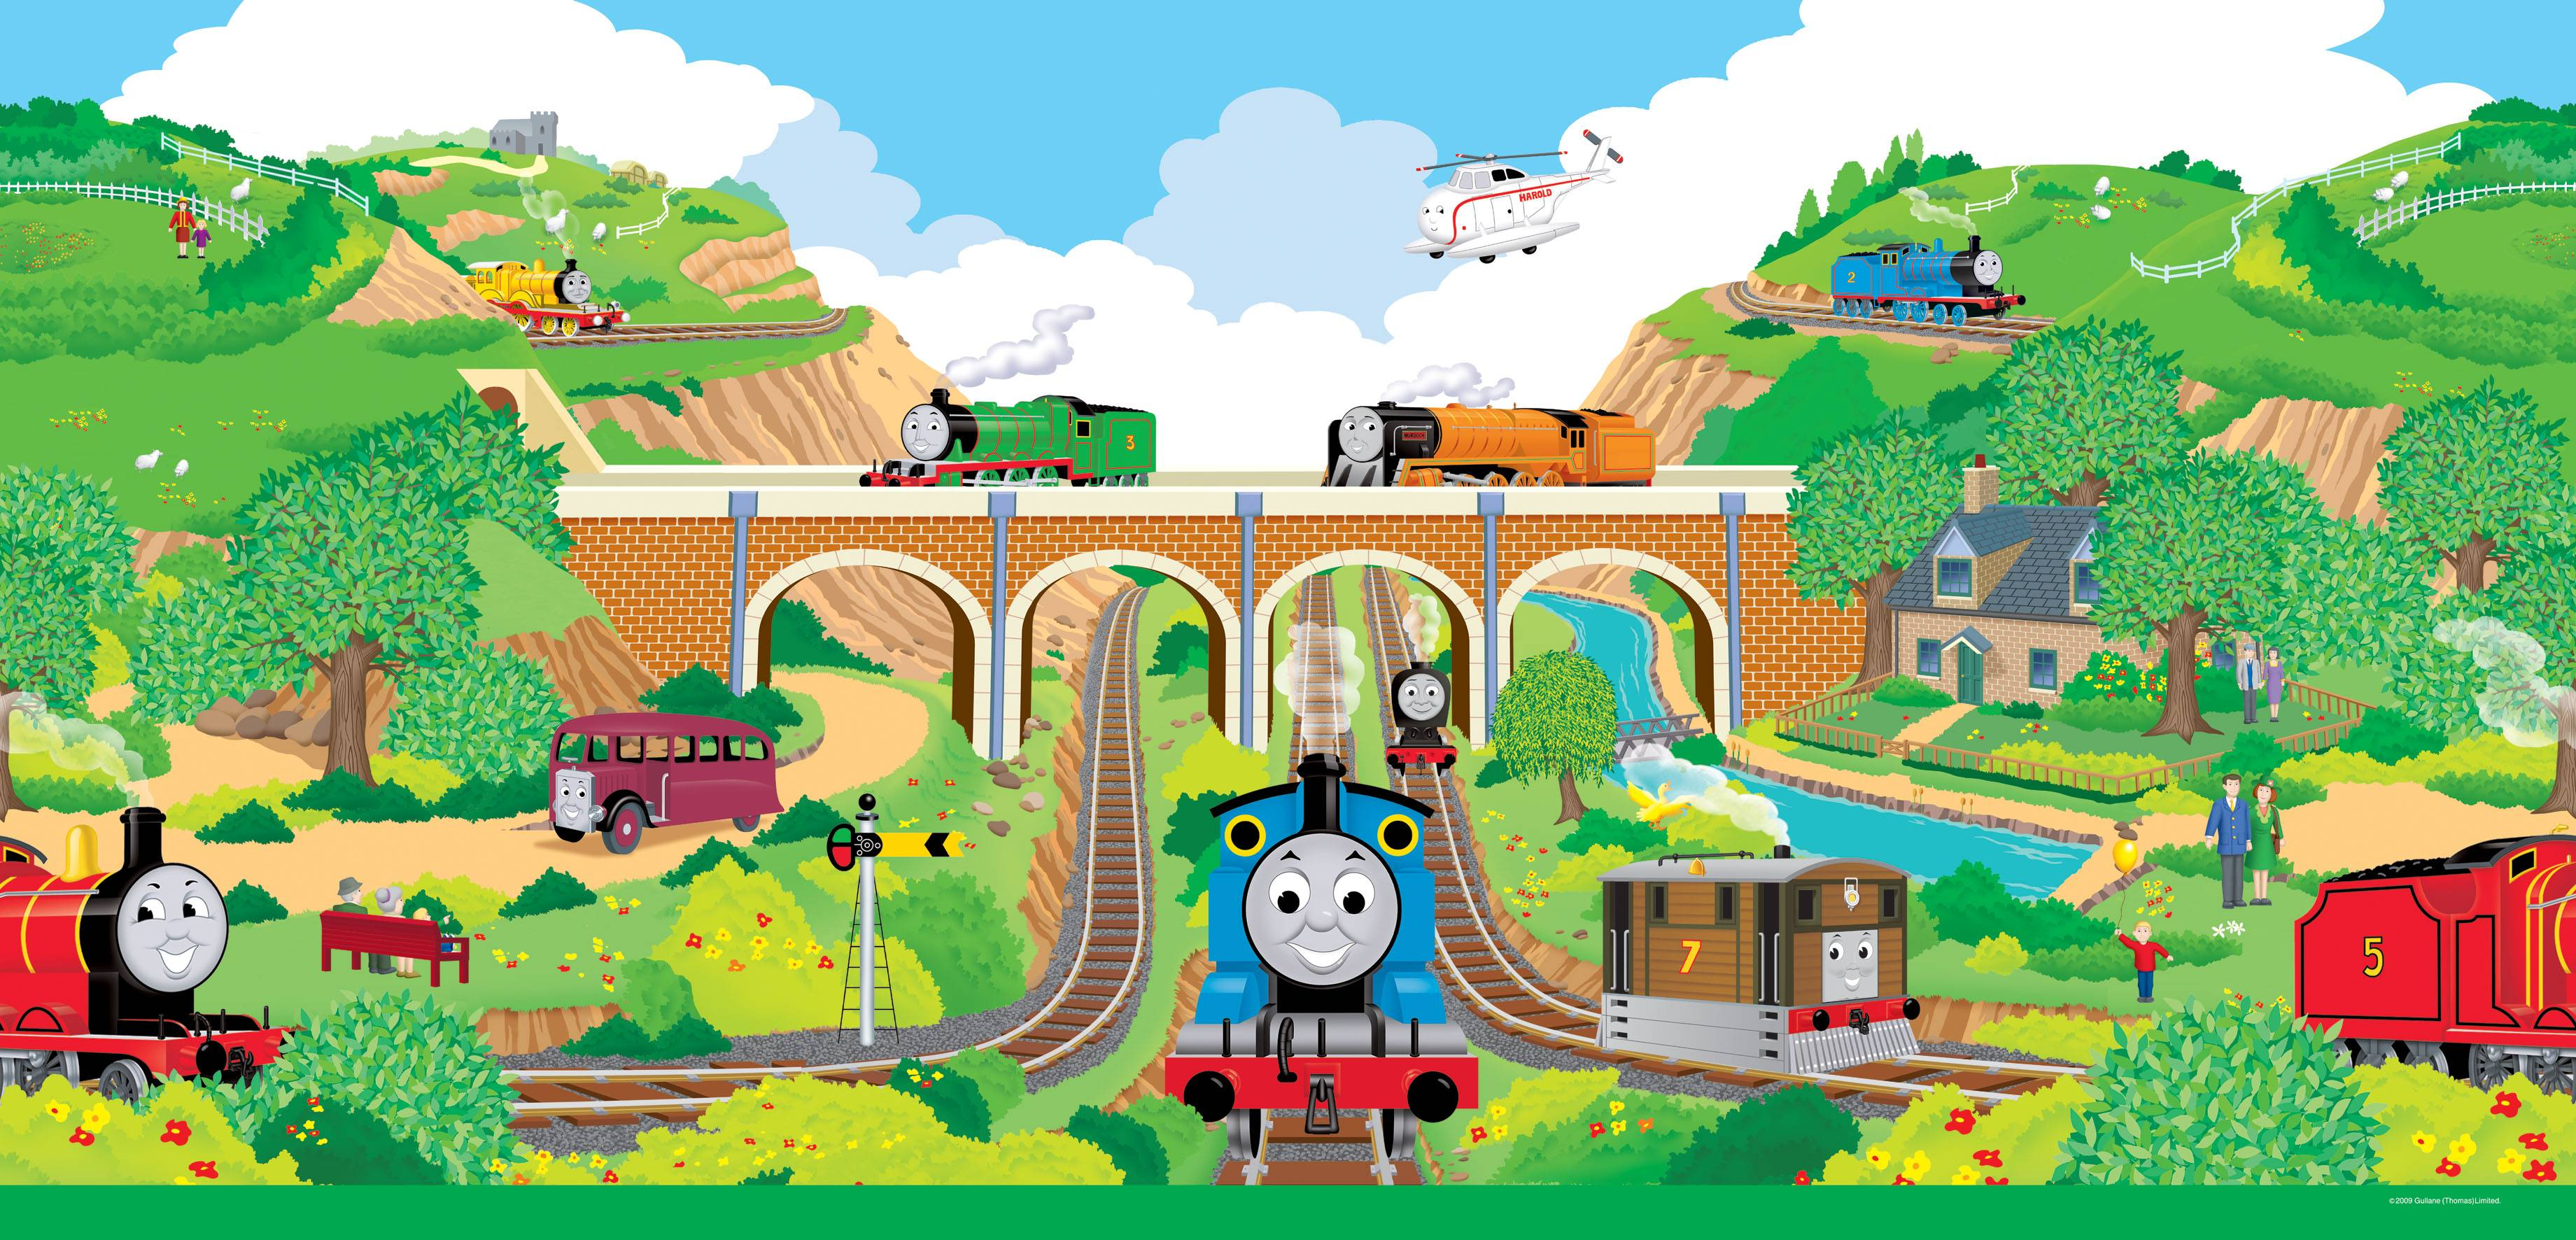 Thomas The Tank Engine Wallpaper   Viewing Gallery 3681x1772